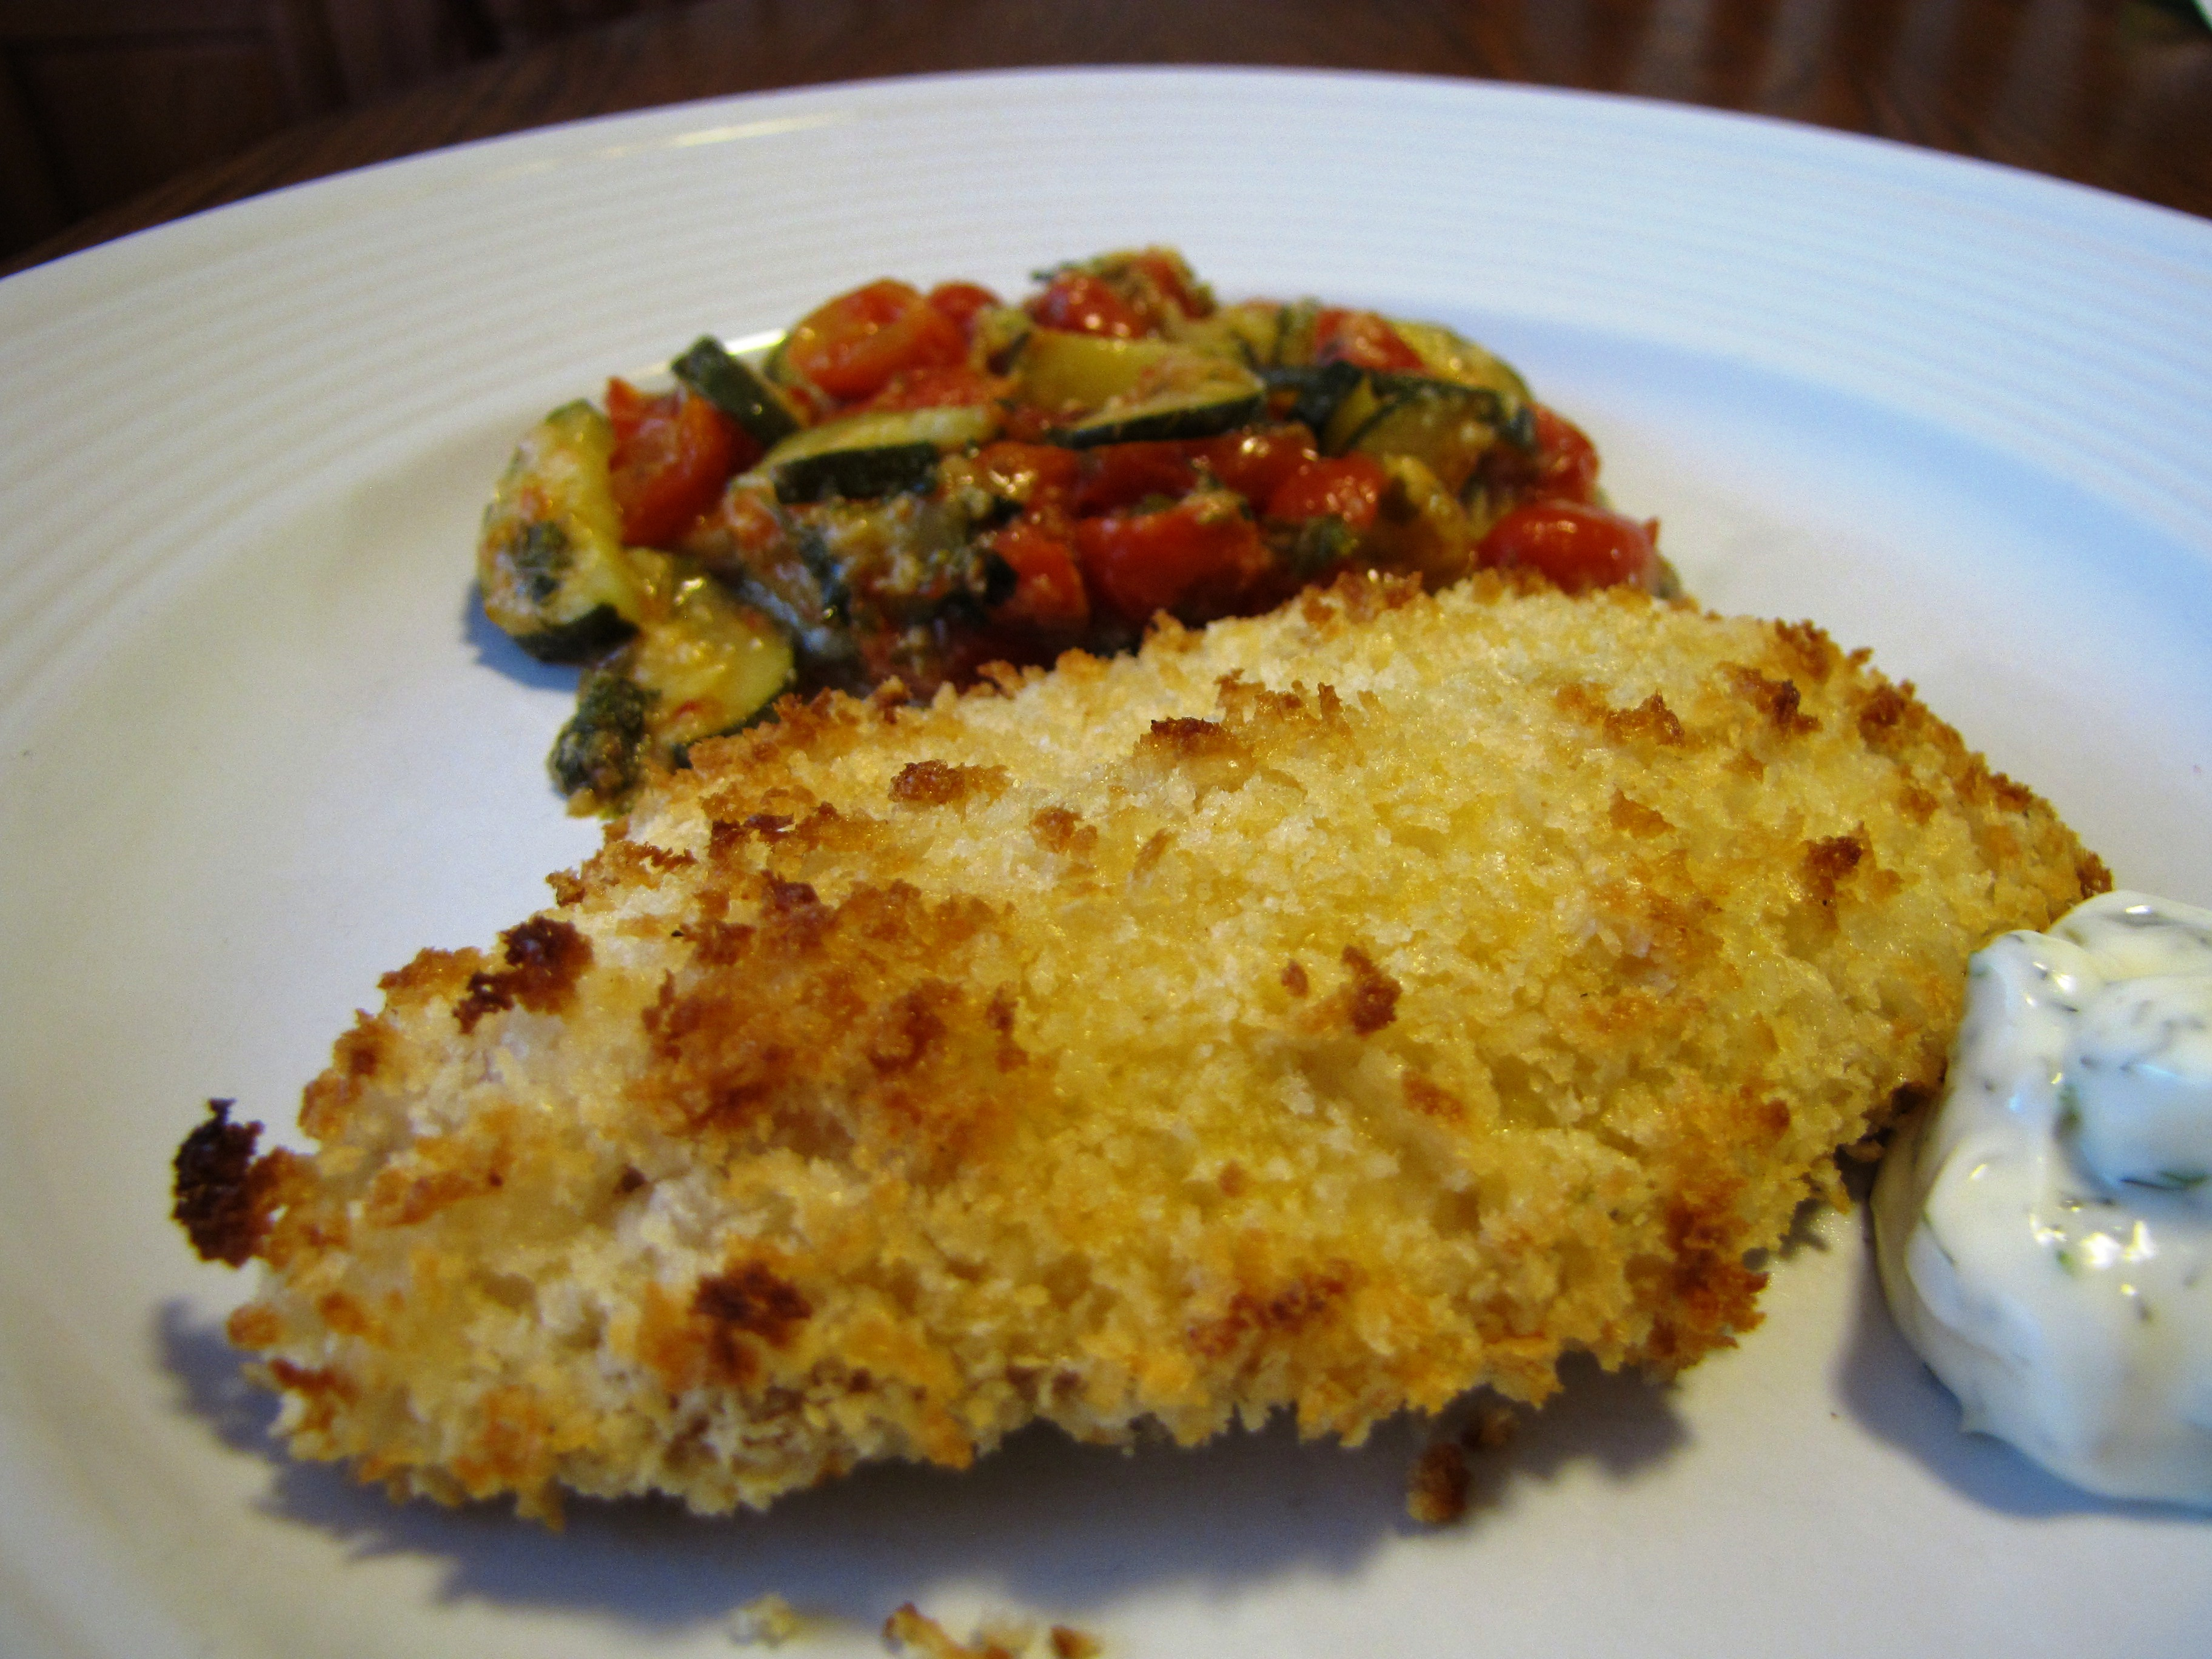 Pan fried cod fish recipe panko dandk organizer for Fried fish with bread crumbs